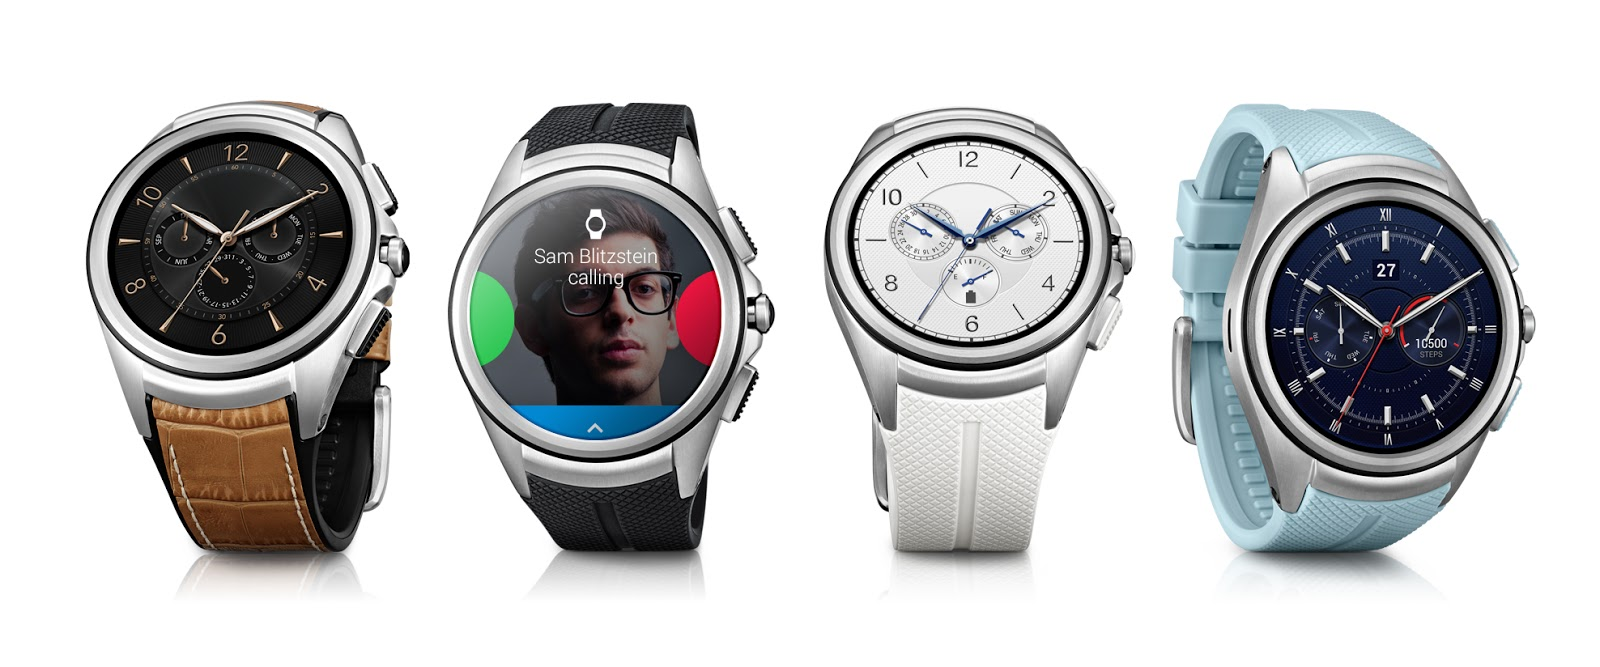 Latest Android Wear Smartwatches Can Go Online Without Smartphone